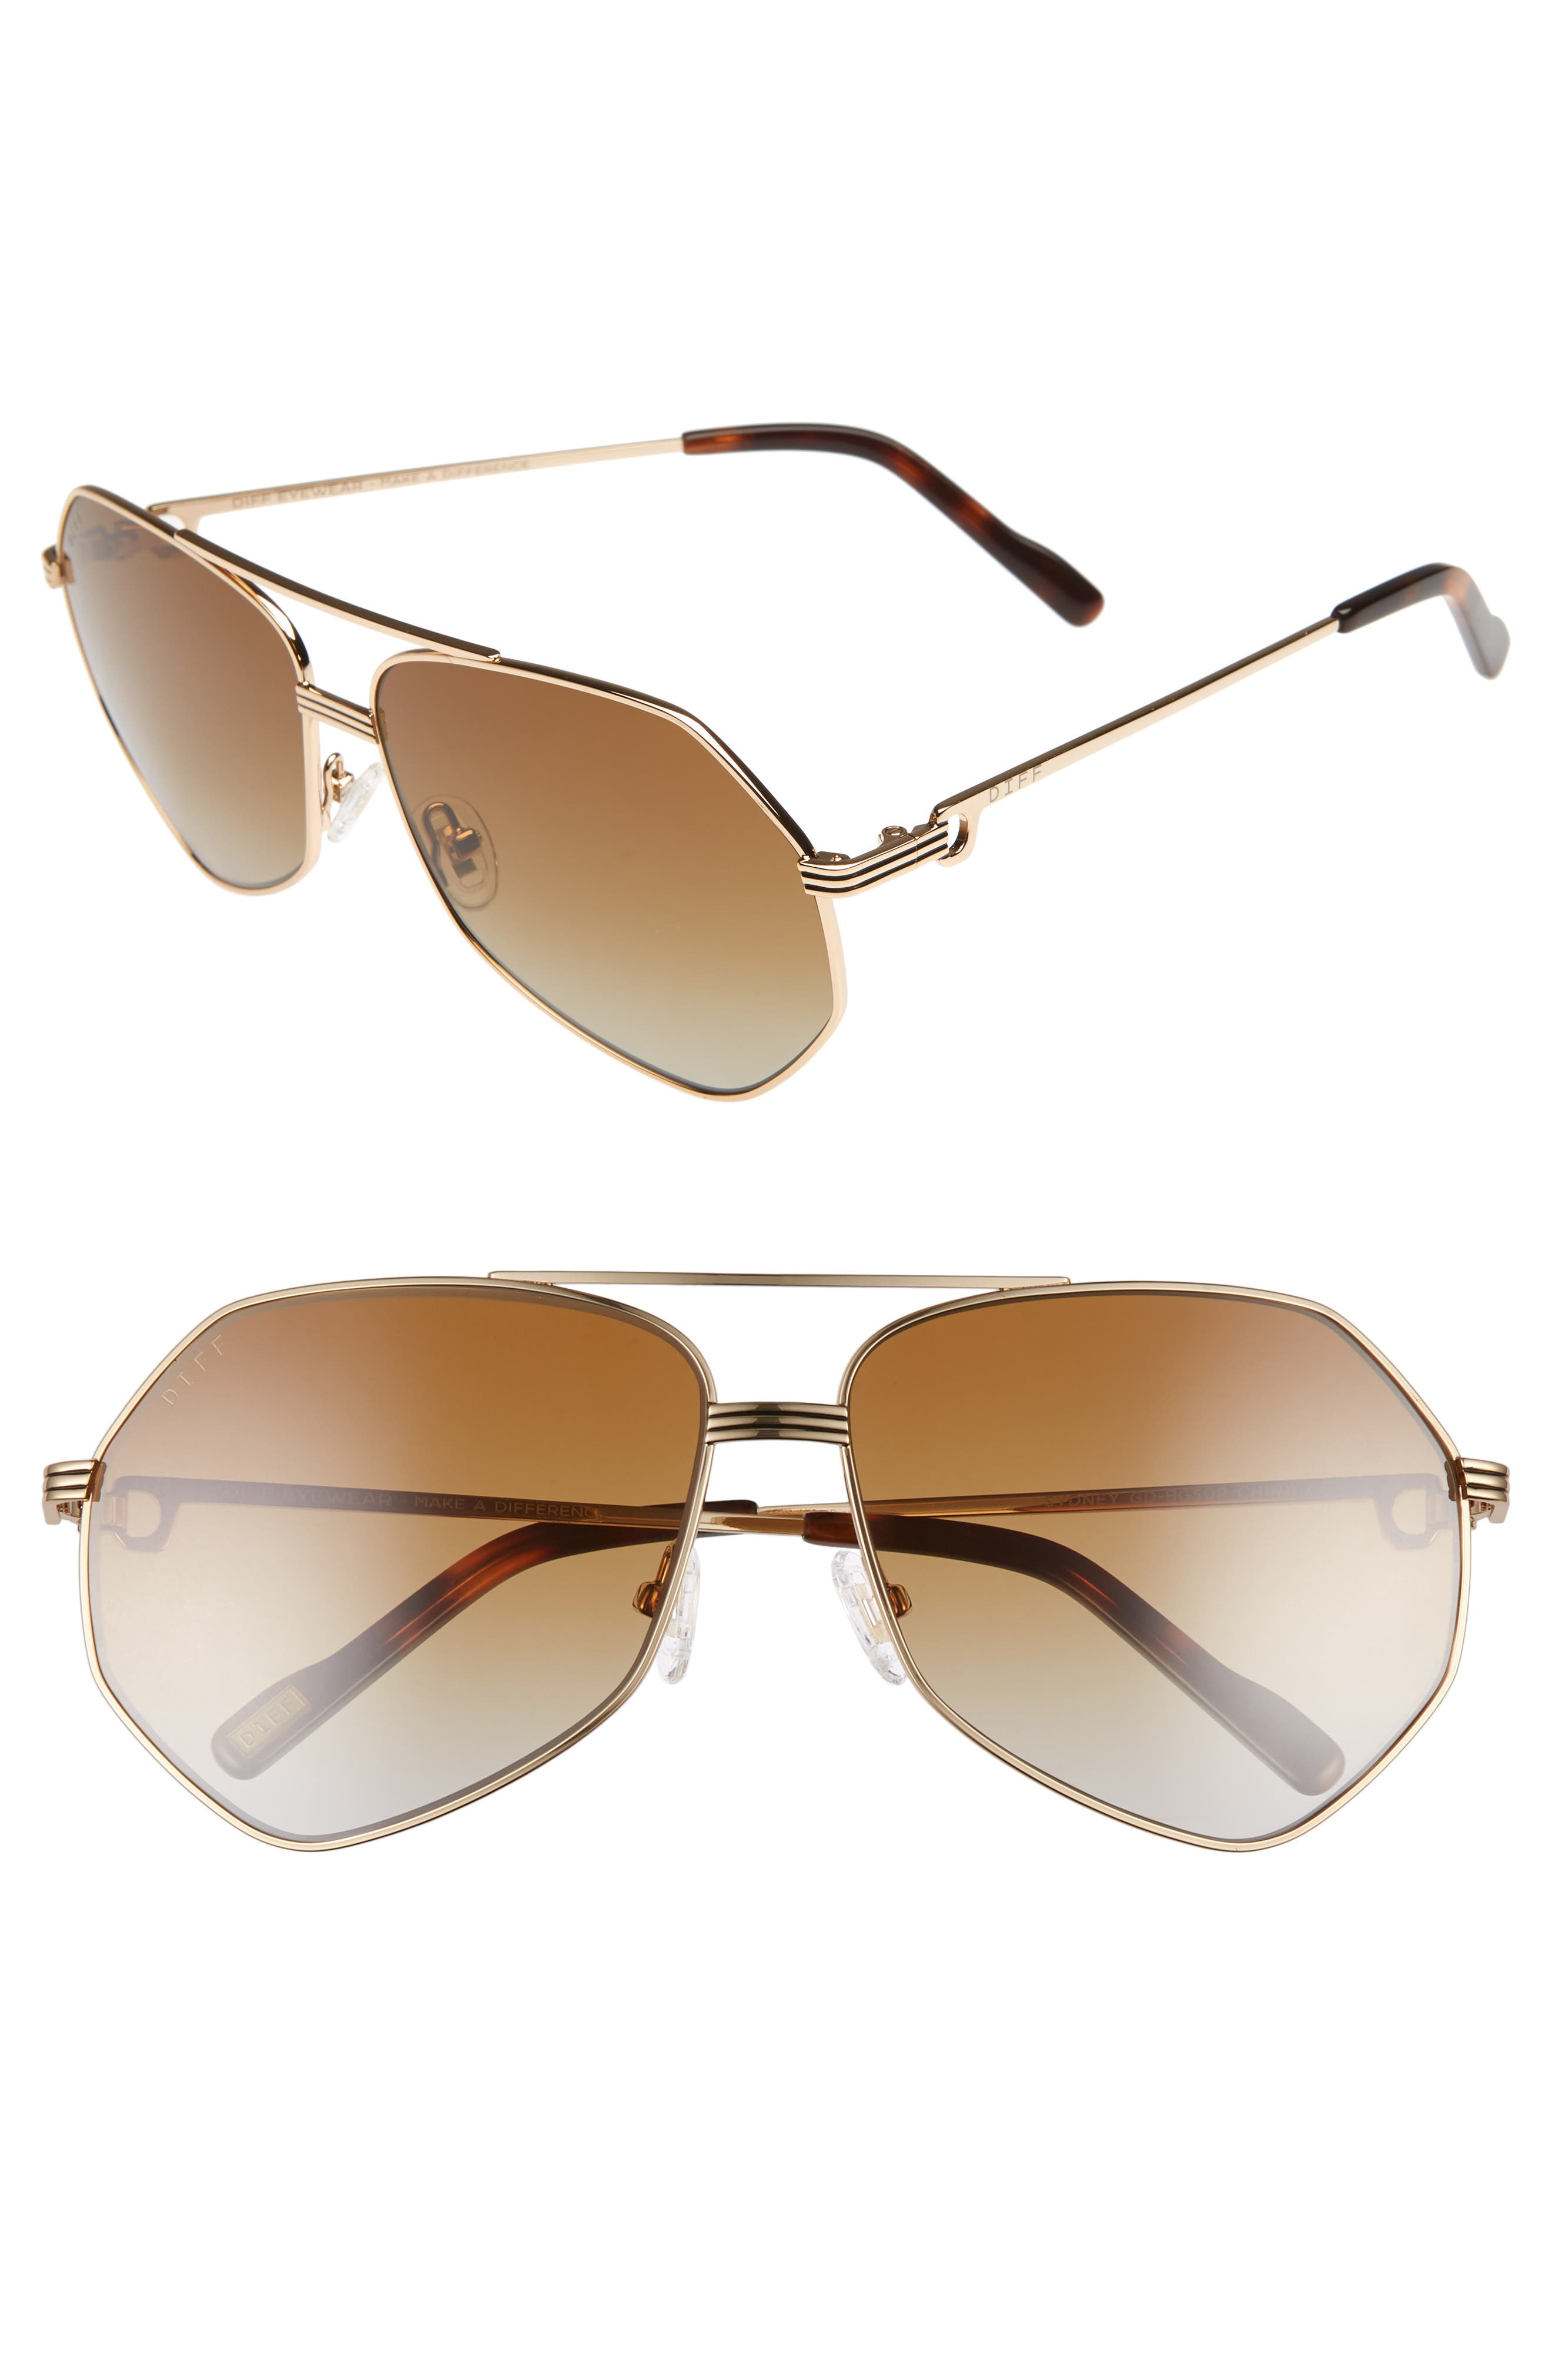 Sydney Sunglasses,                             Main thumbnail 1, color,                             GOLD/ BROWN